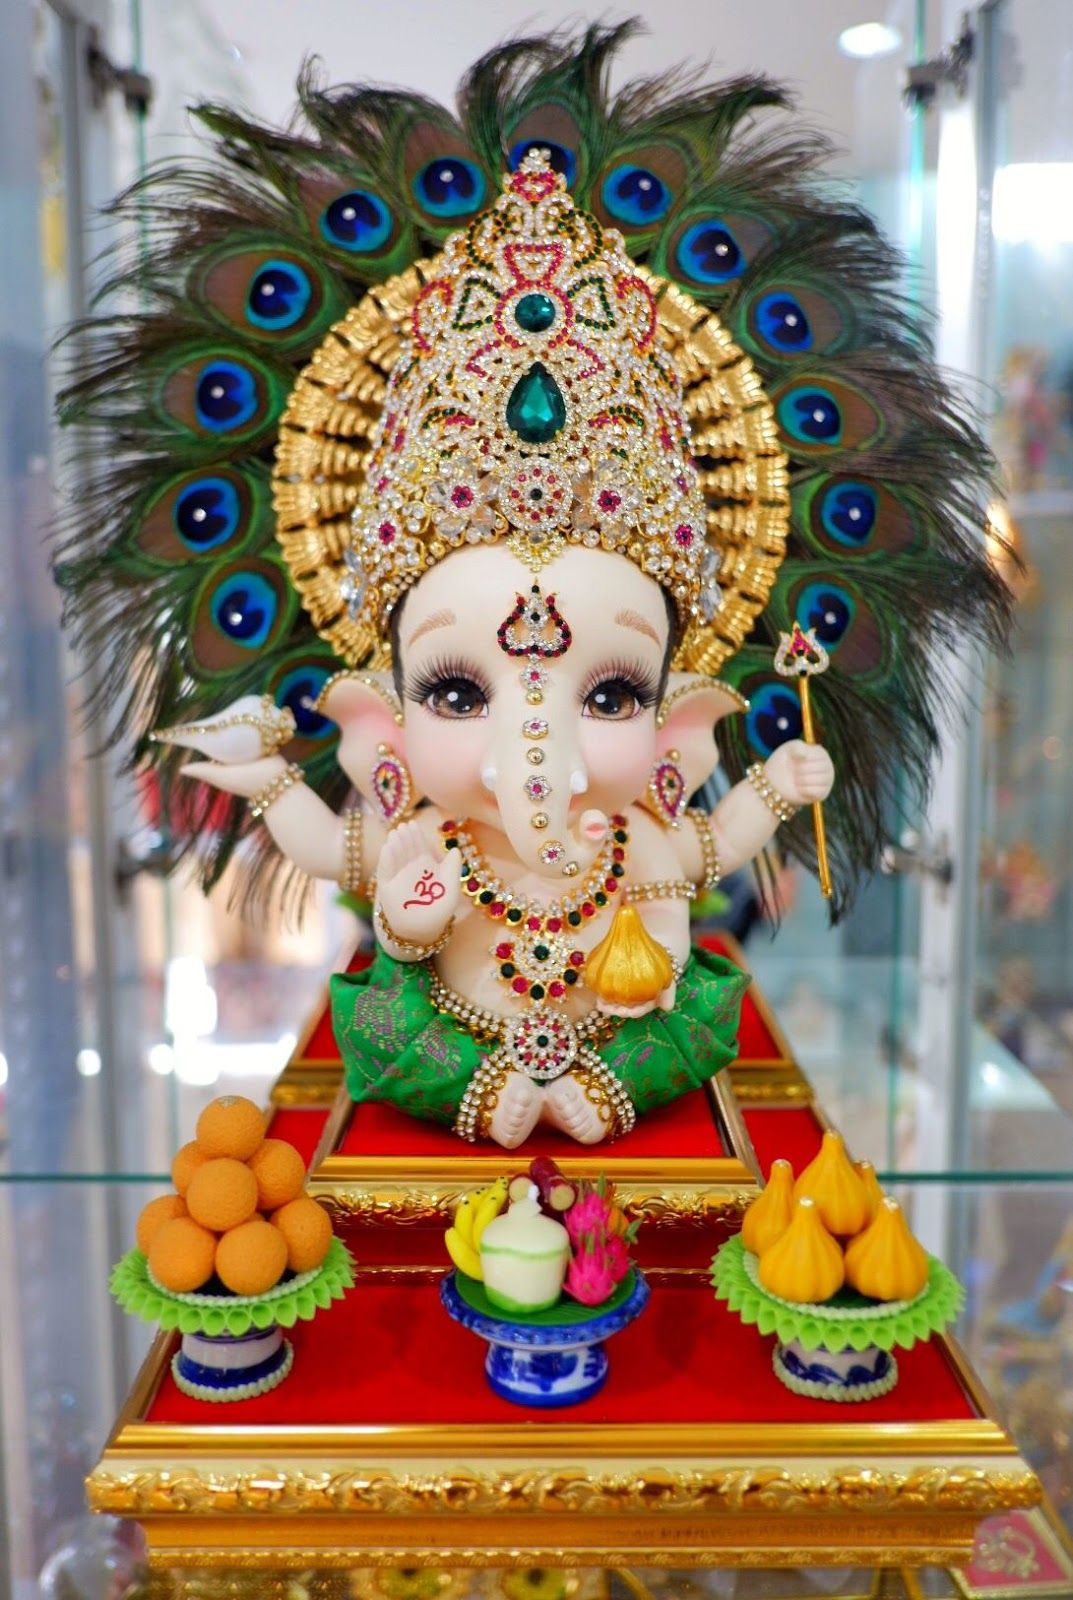 Paintings Top 20 Photos Of Cute Ganesha To Use For Instagram And Whatsapp Story Happy Ganesh Chaturthi Images Lord Ganesha Paintings Ganesh Chaturthi Images